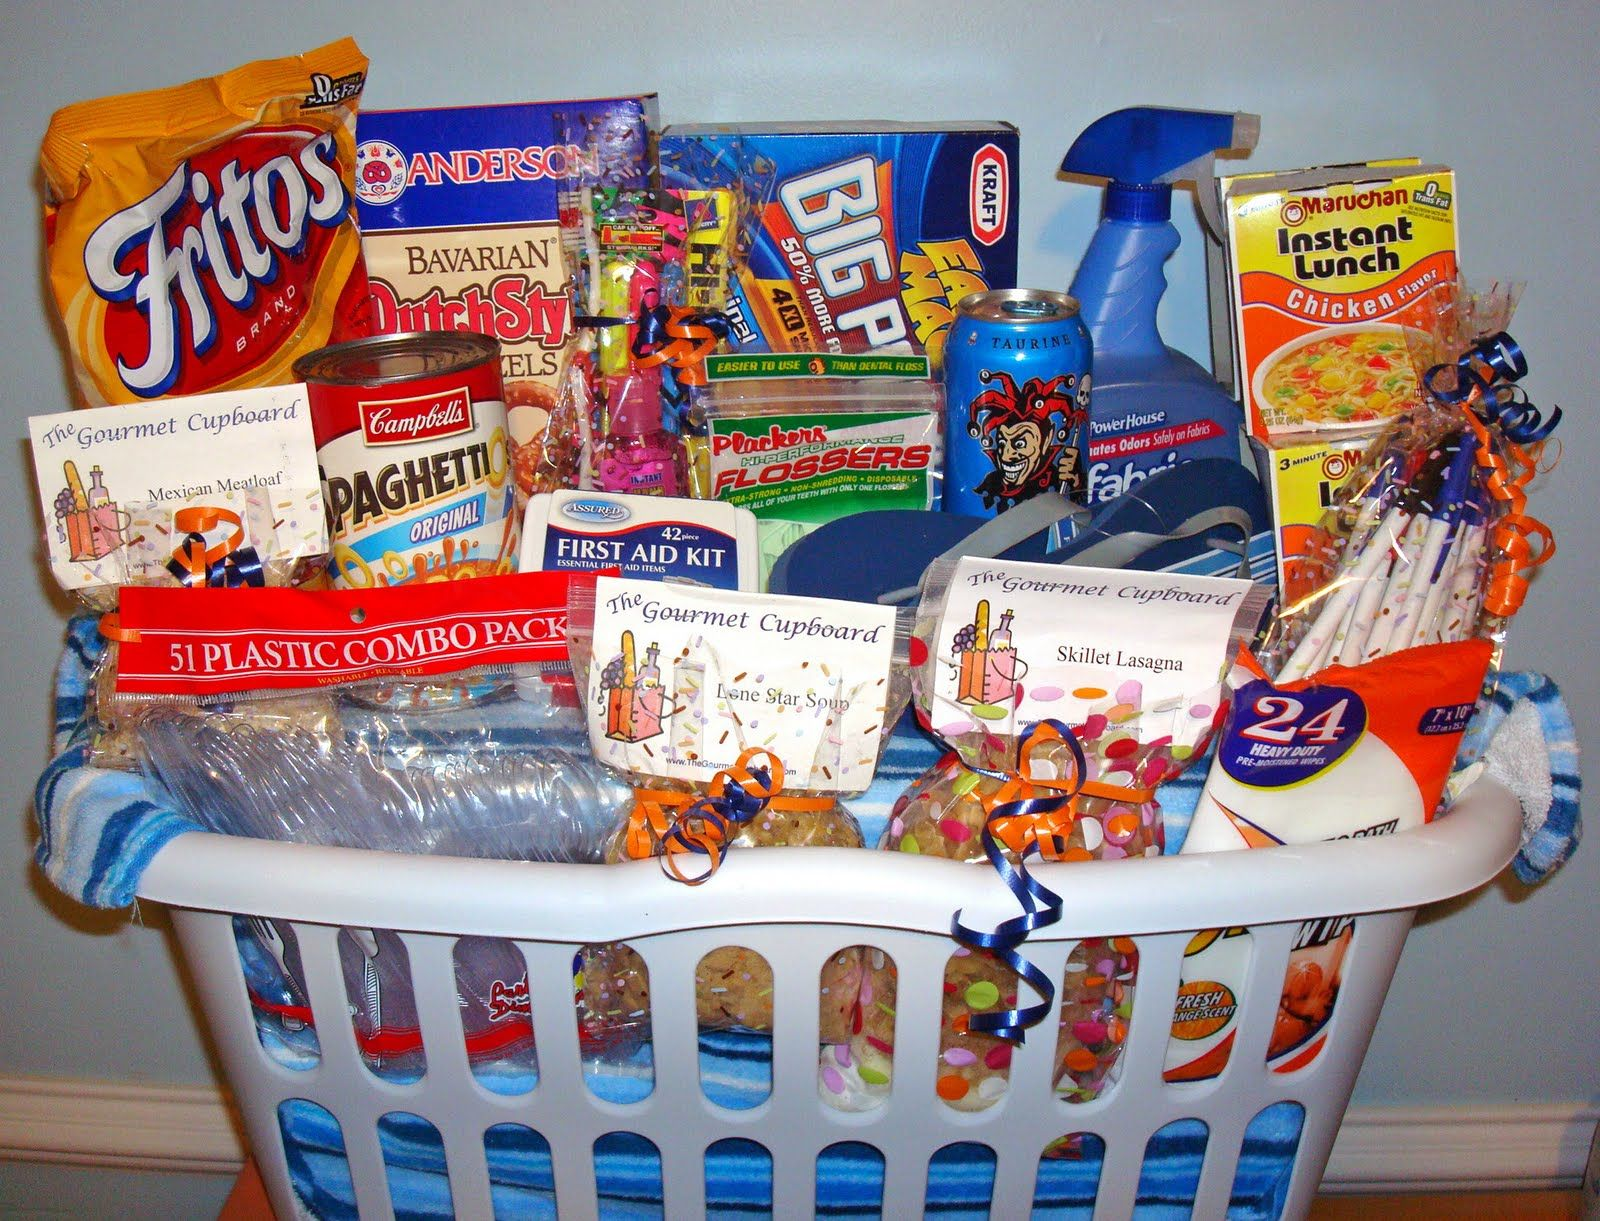 Pics photos funny college survival kit ideas - College Survival Kit